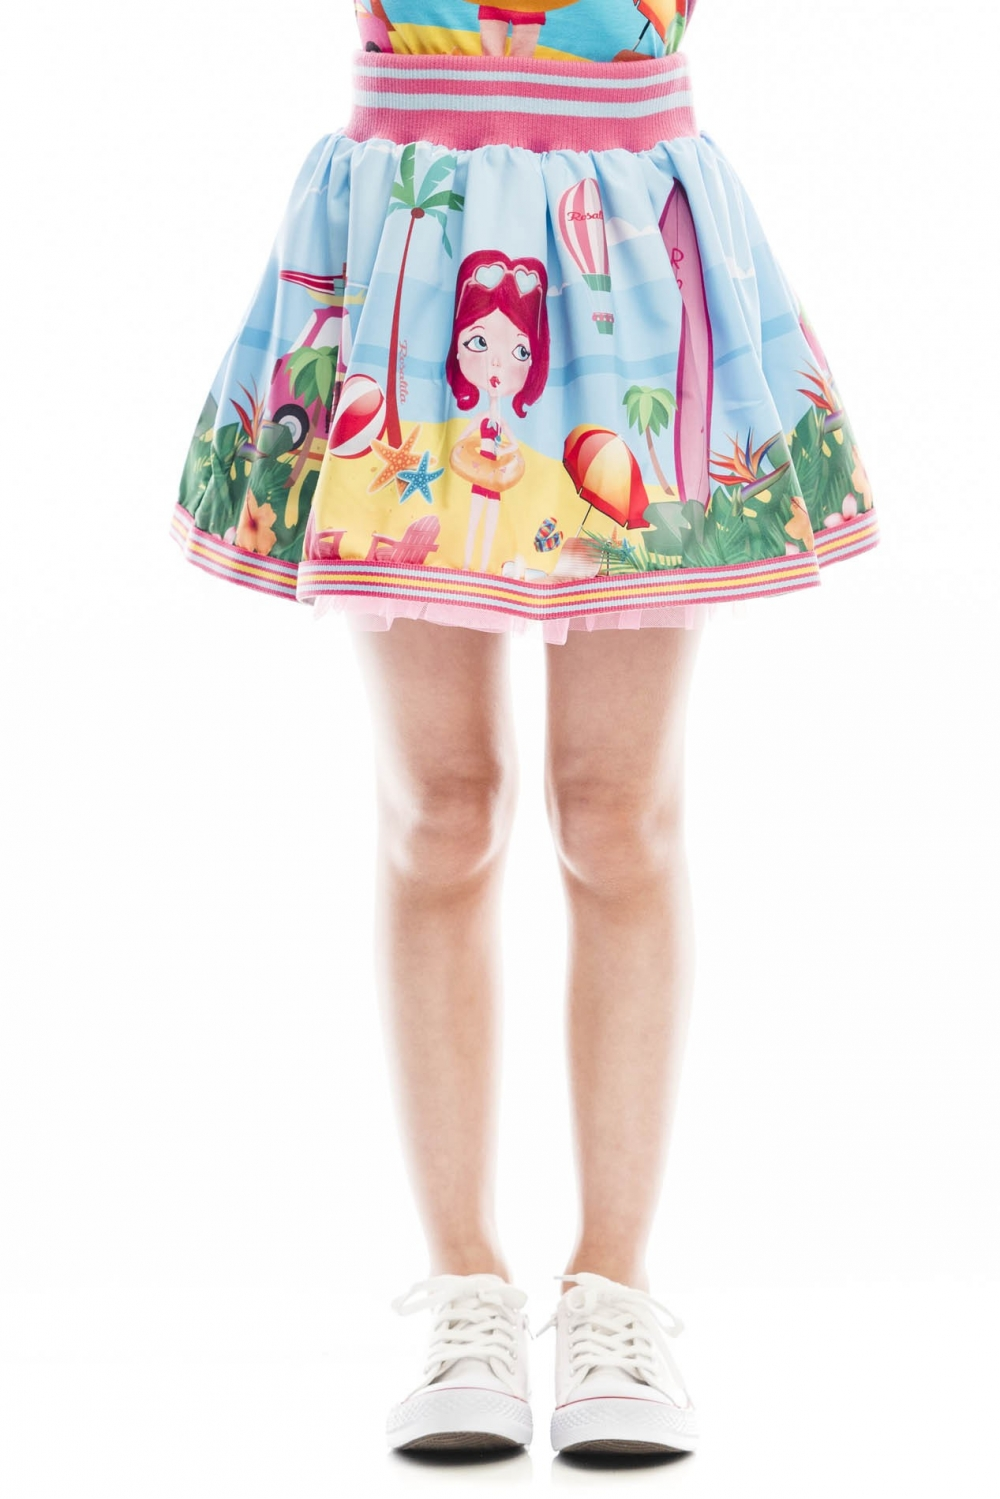 2a8ceb3479ac Mini flying skirt, with tulle on the bottom, with cheerful doll ...